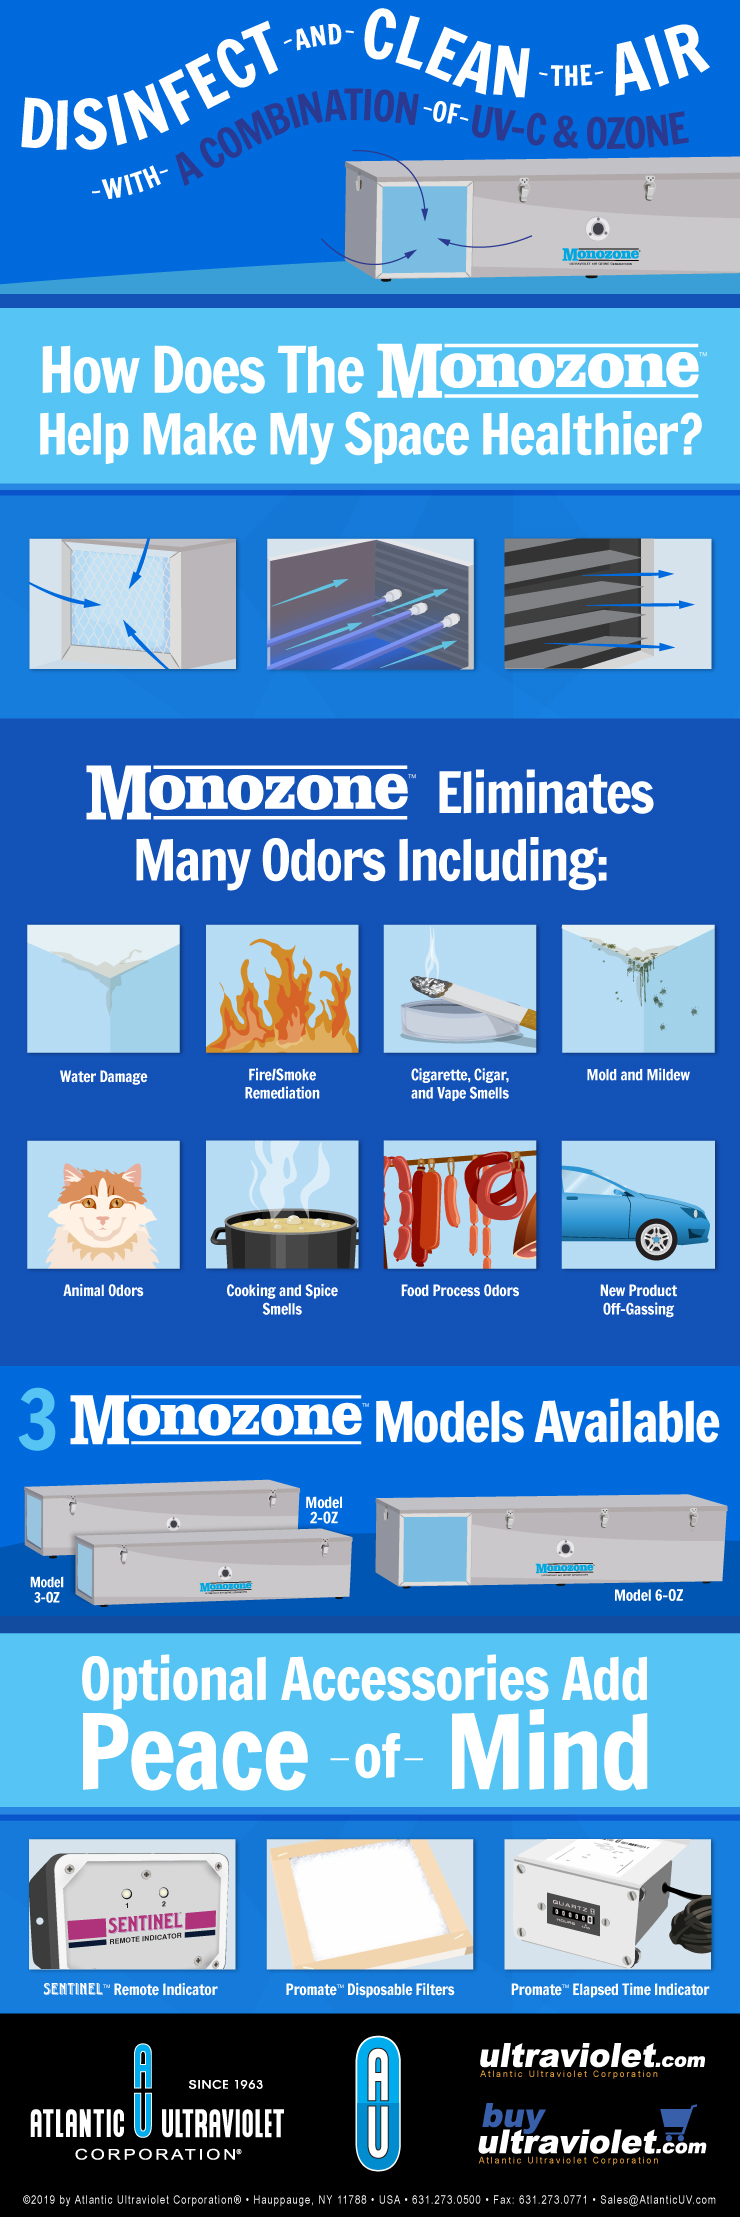 Disinfect and Clean the Air with a Combination of UV-C & Ozone Infographic